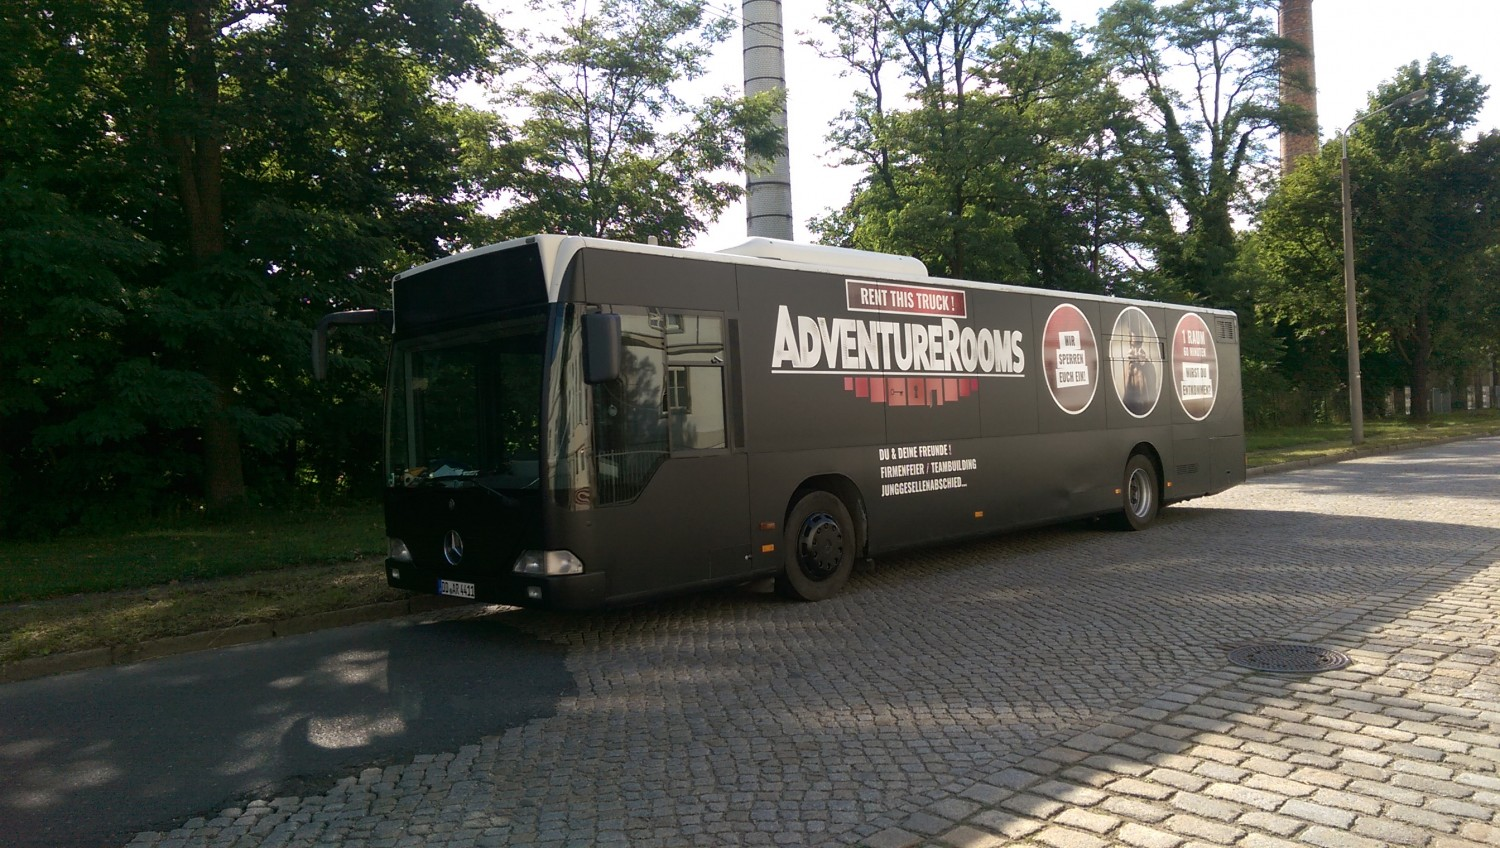 AdventureRooms on Tour schwarzer Bolide als mobiles Escape Game